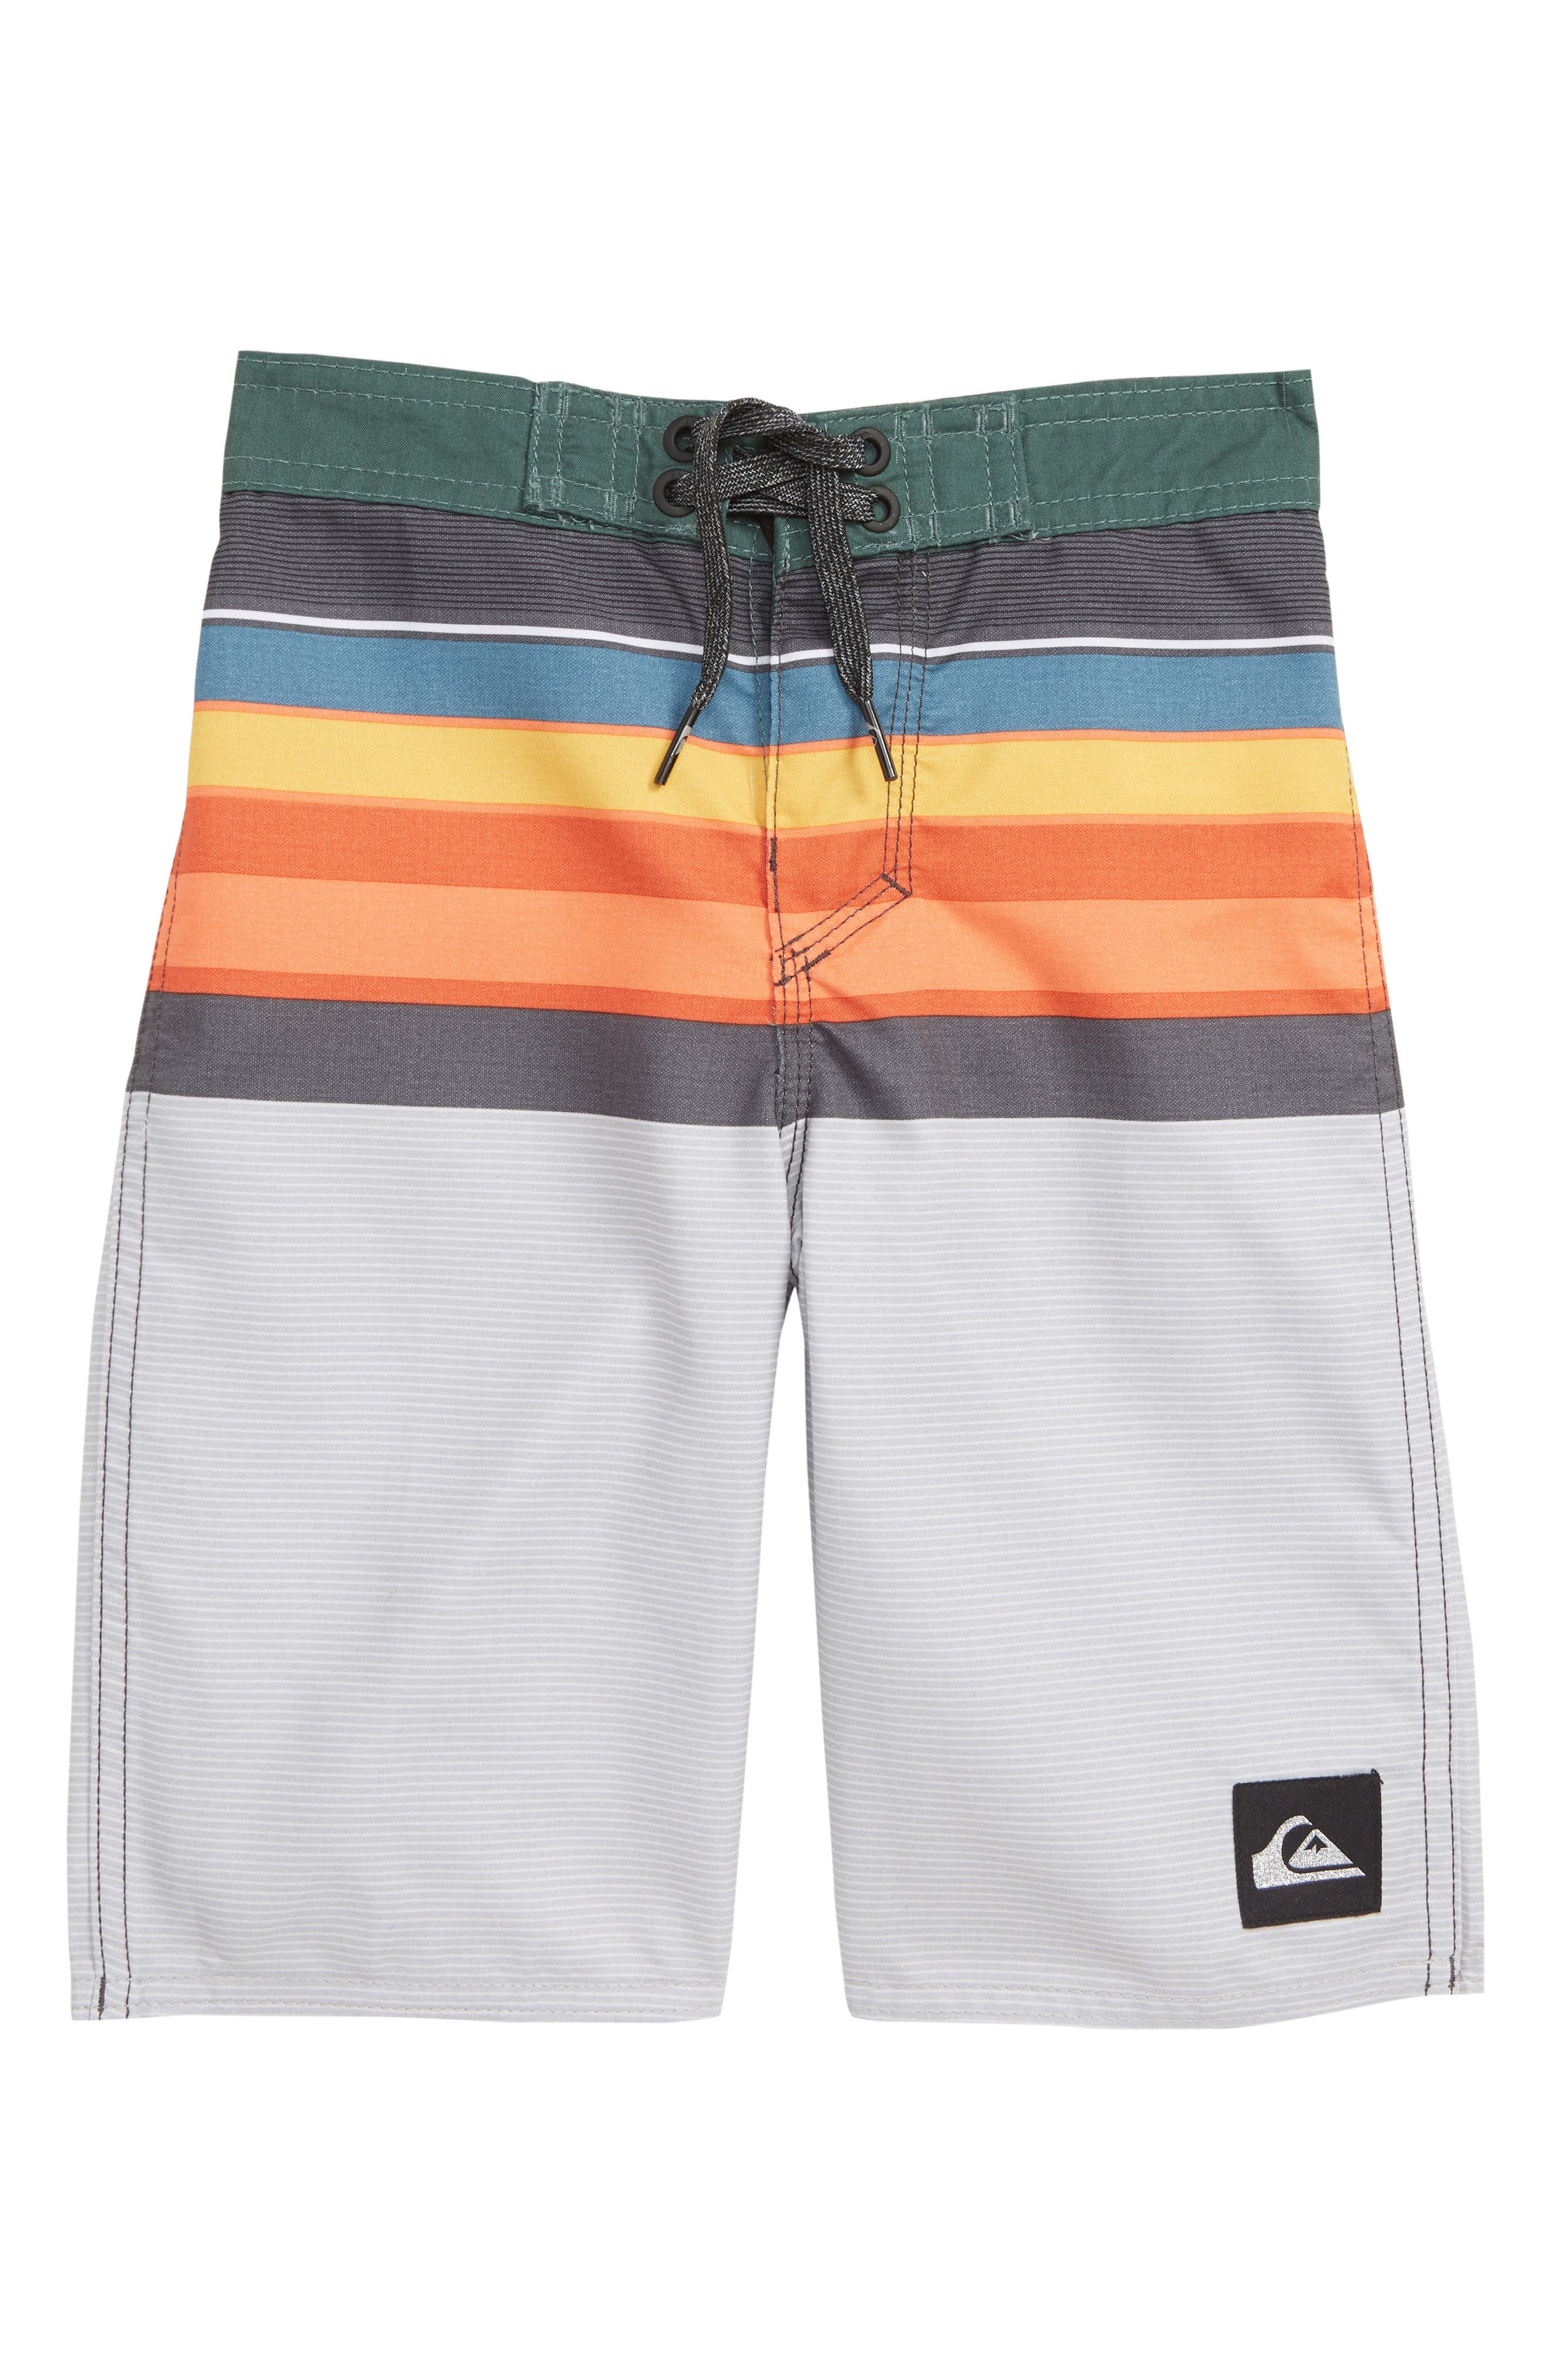 QUIKSILVER,                             Everyday Swell Vision Board Shorts,                             Main thumbnail 1, color,                             EBONY